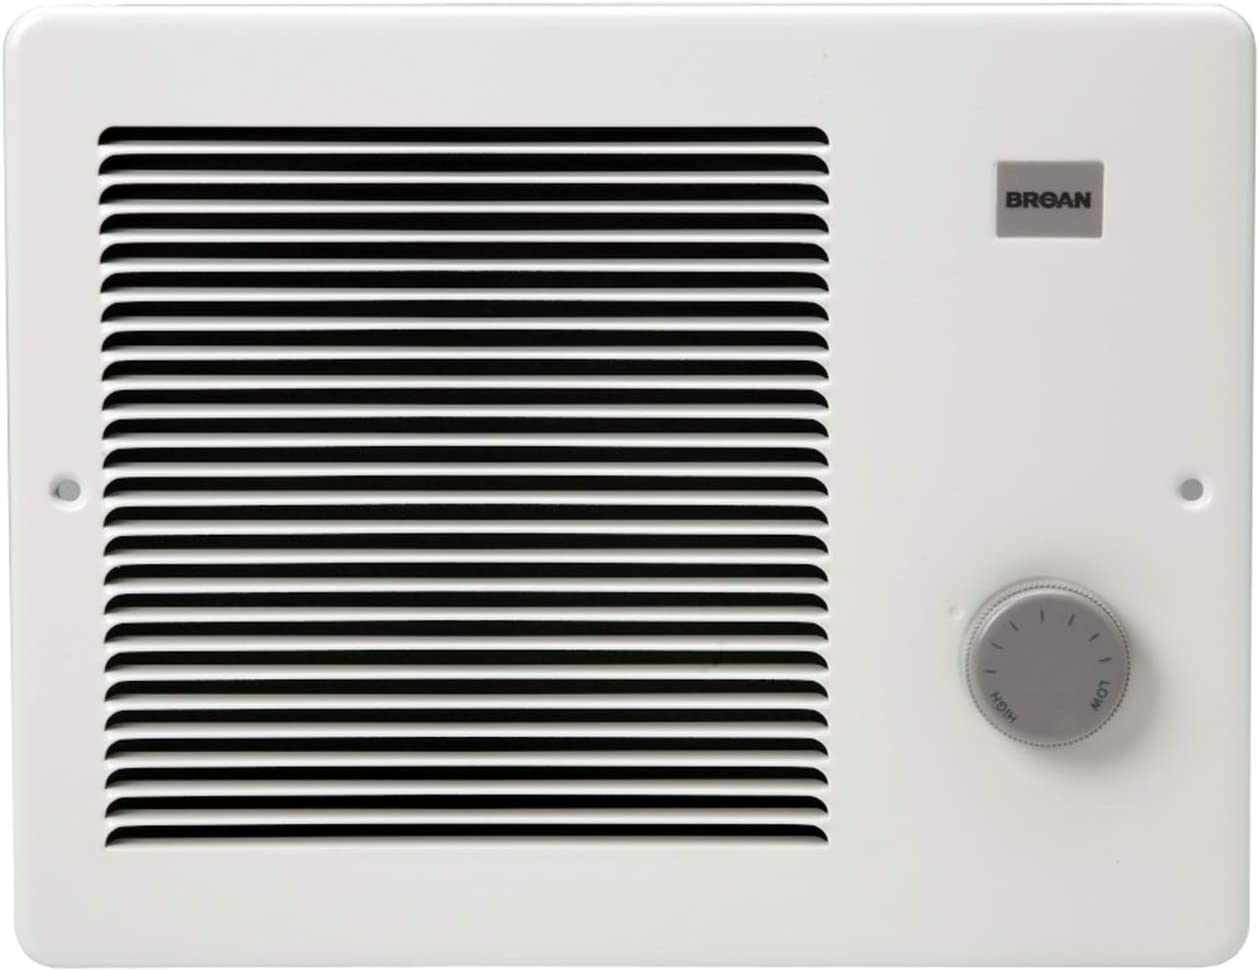 Low price Broan-NuTone 174 White Painted Grille 750 Wat Some reservation Wall 1500 Heater